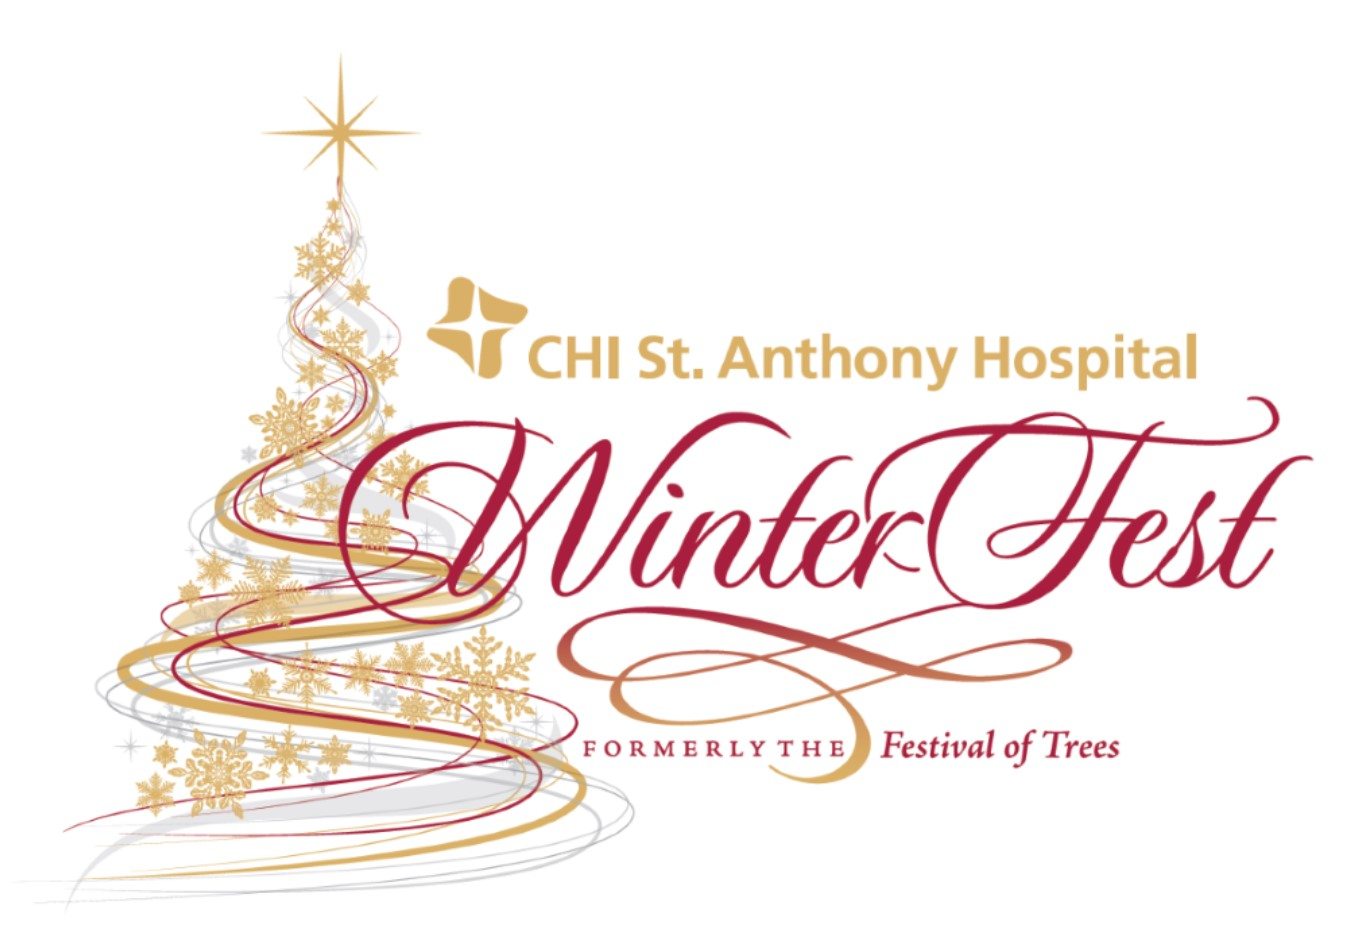 WinterFest promotional graphic featuring gold and red swirl and snowflake design in a shape of a Christmas tree